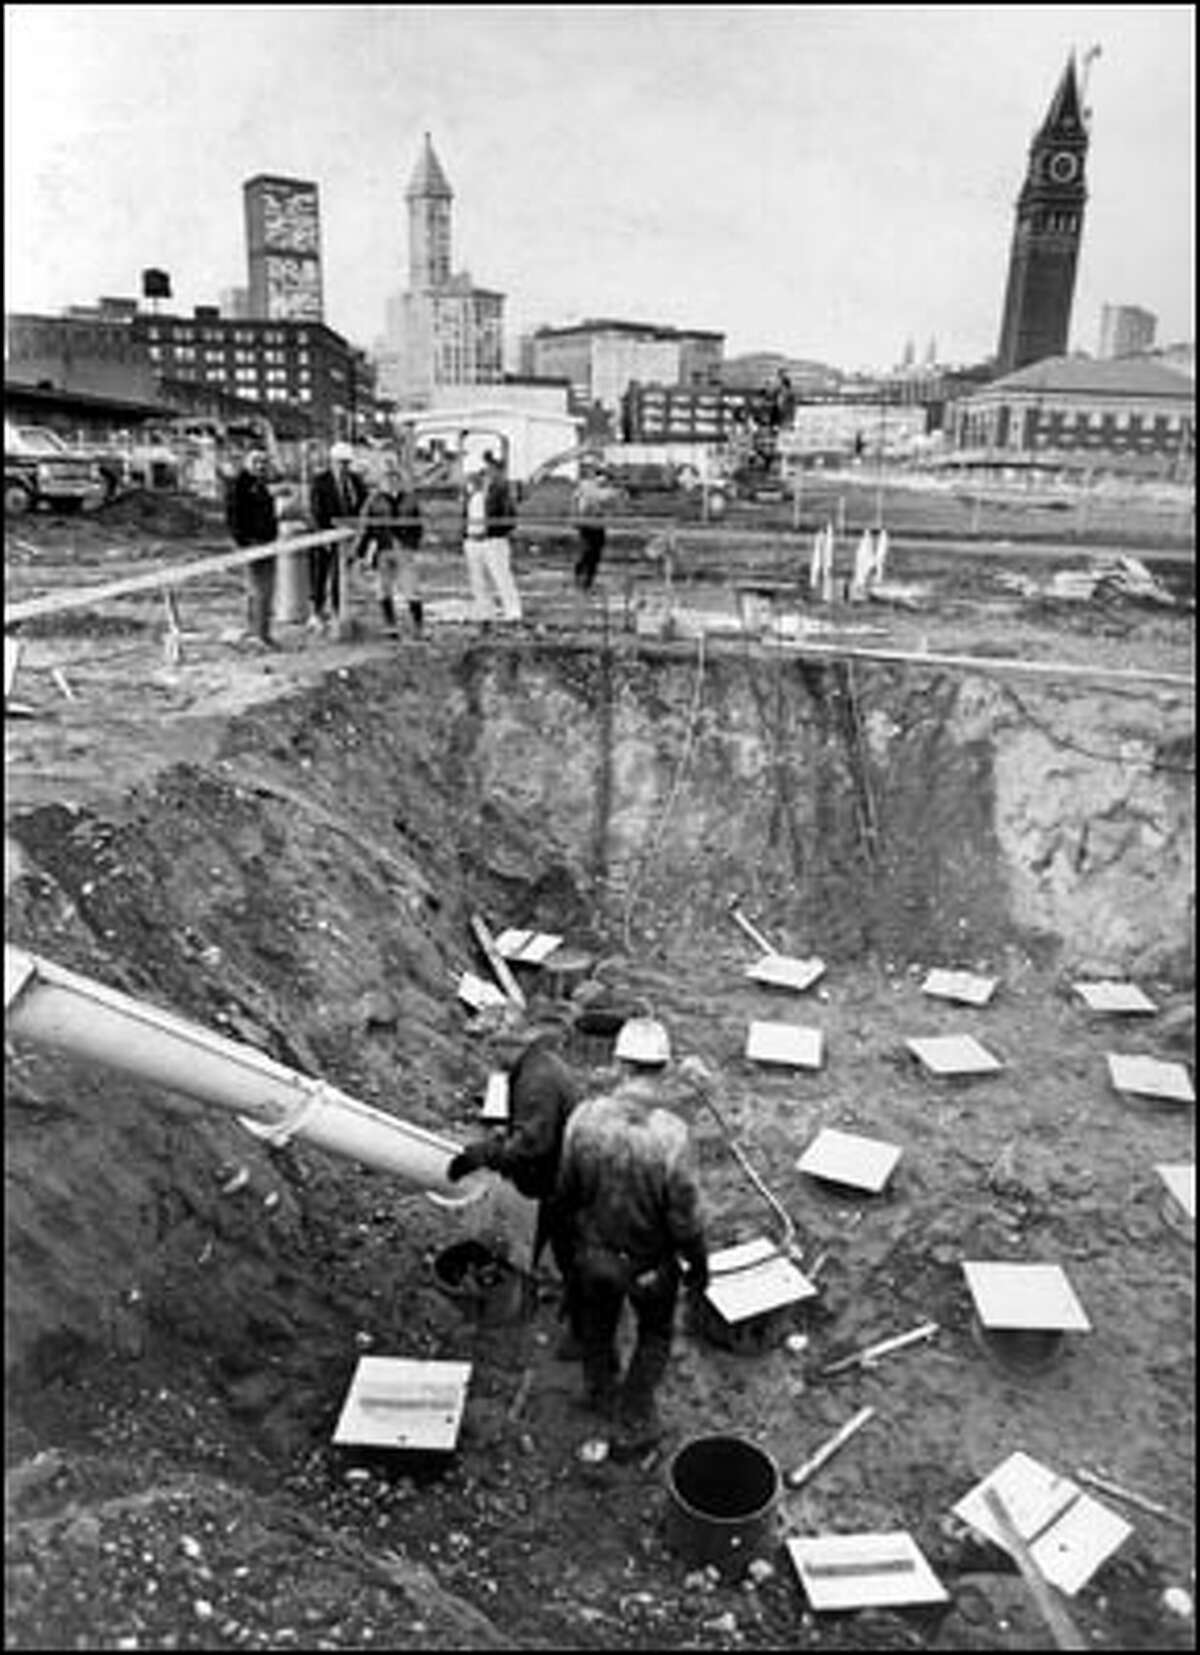 July 10, 1972: Workmen begin pouring concrete for the foundations of King County's new domed stadium. This angle looks northeast; the steepled roof of historic Smith Tower juts skyward from the horizon at left and Union Station's clock tower juts skyward on the right.